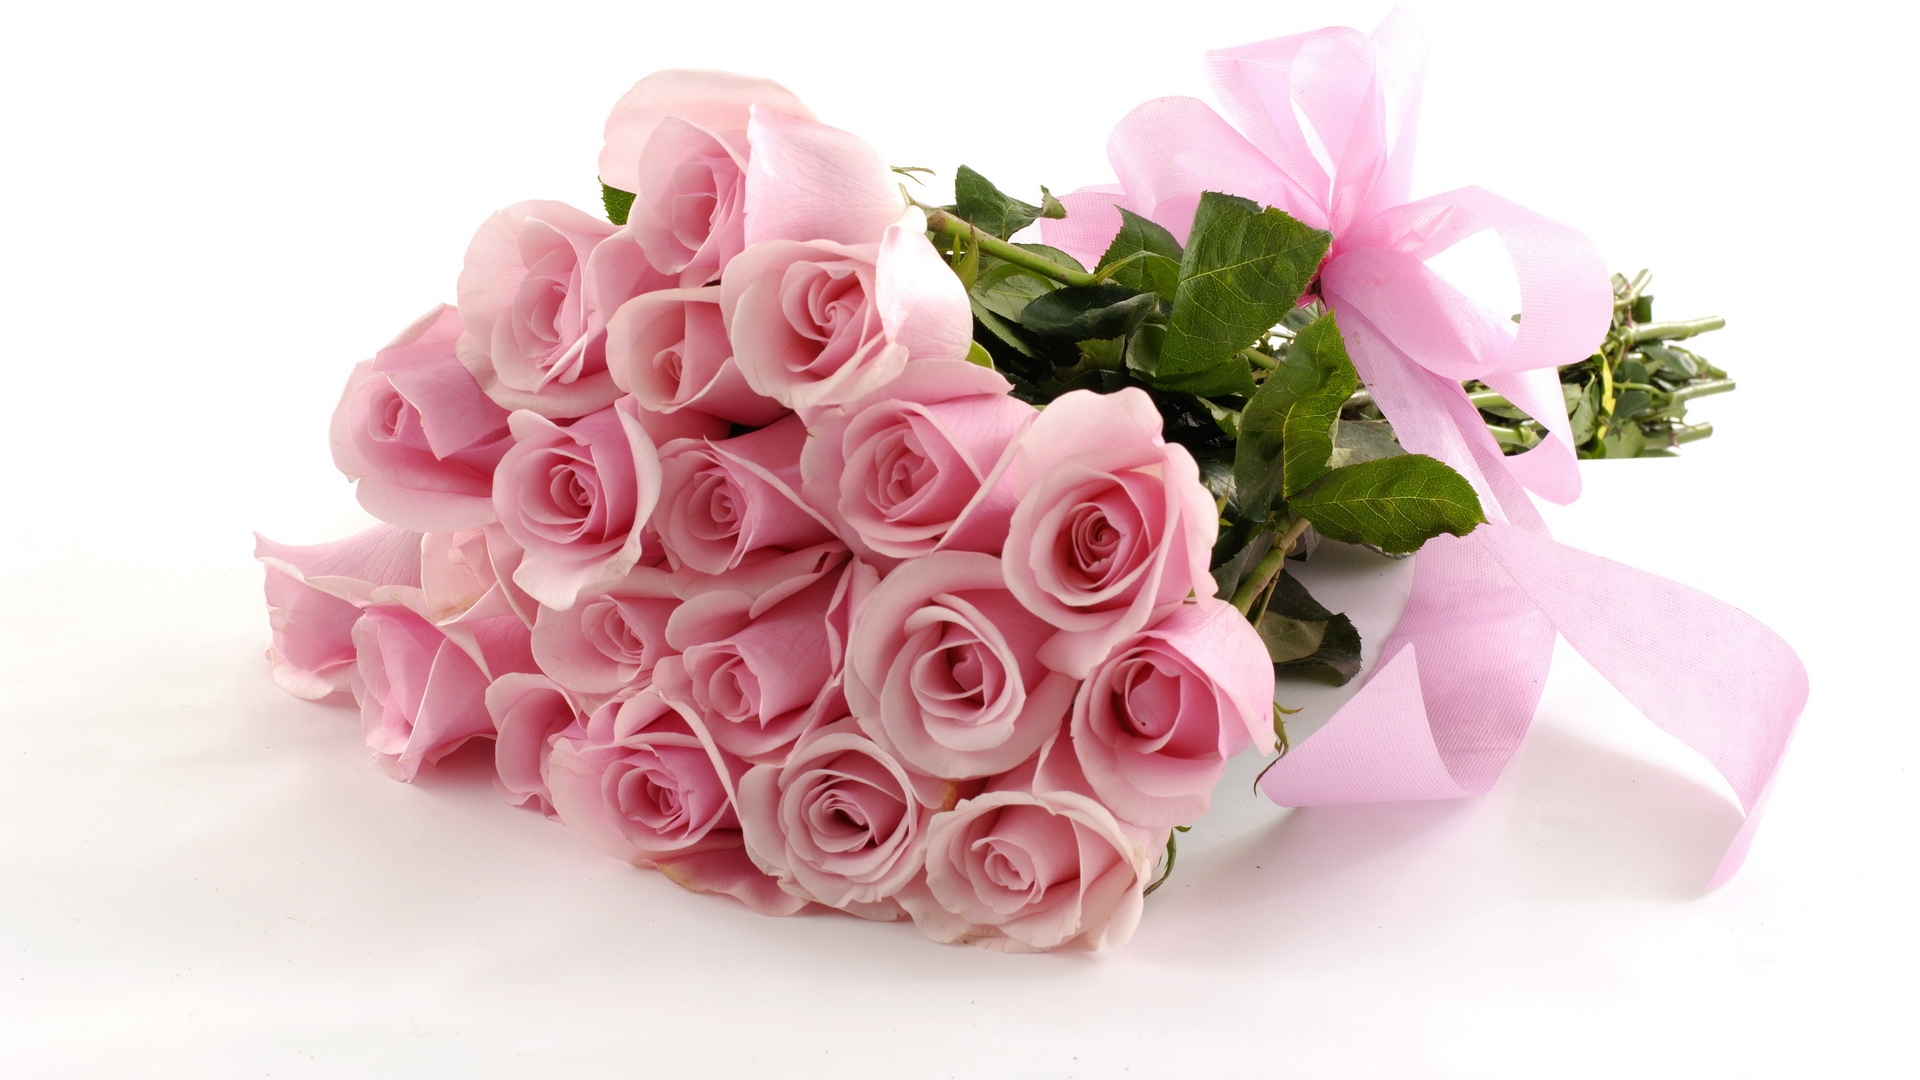 Саяногорск Инфо - holidays___international_womens_day_beautiful_pink_bouquet_as_a_gift_on_march_8_057093_.jpg, Скачано: 189